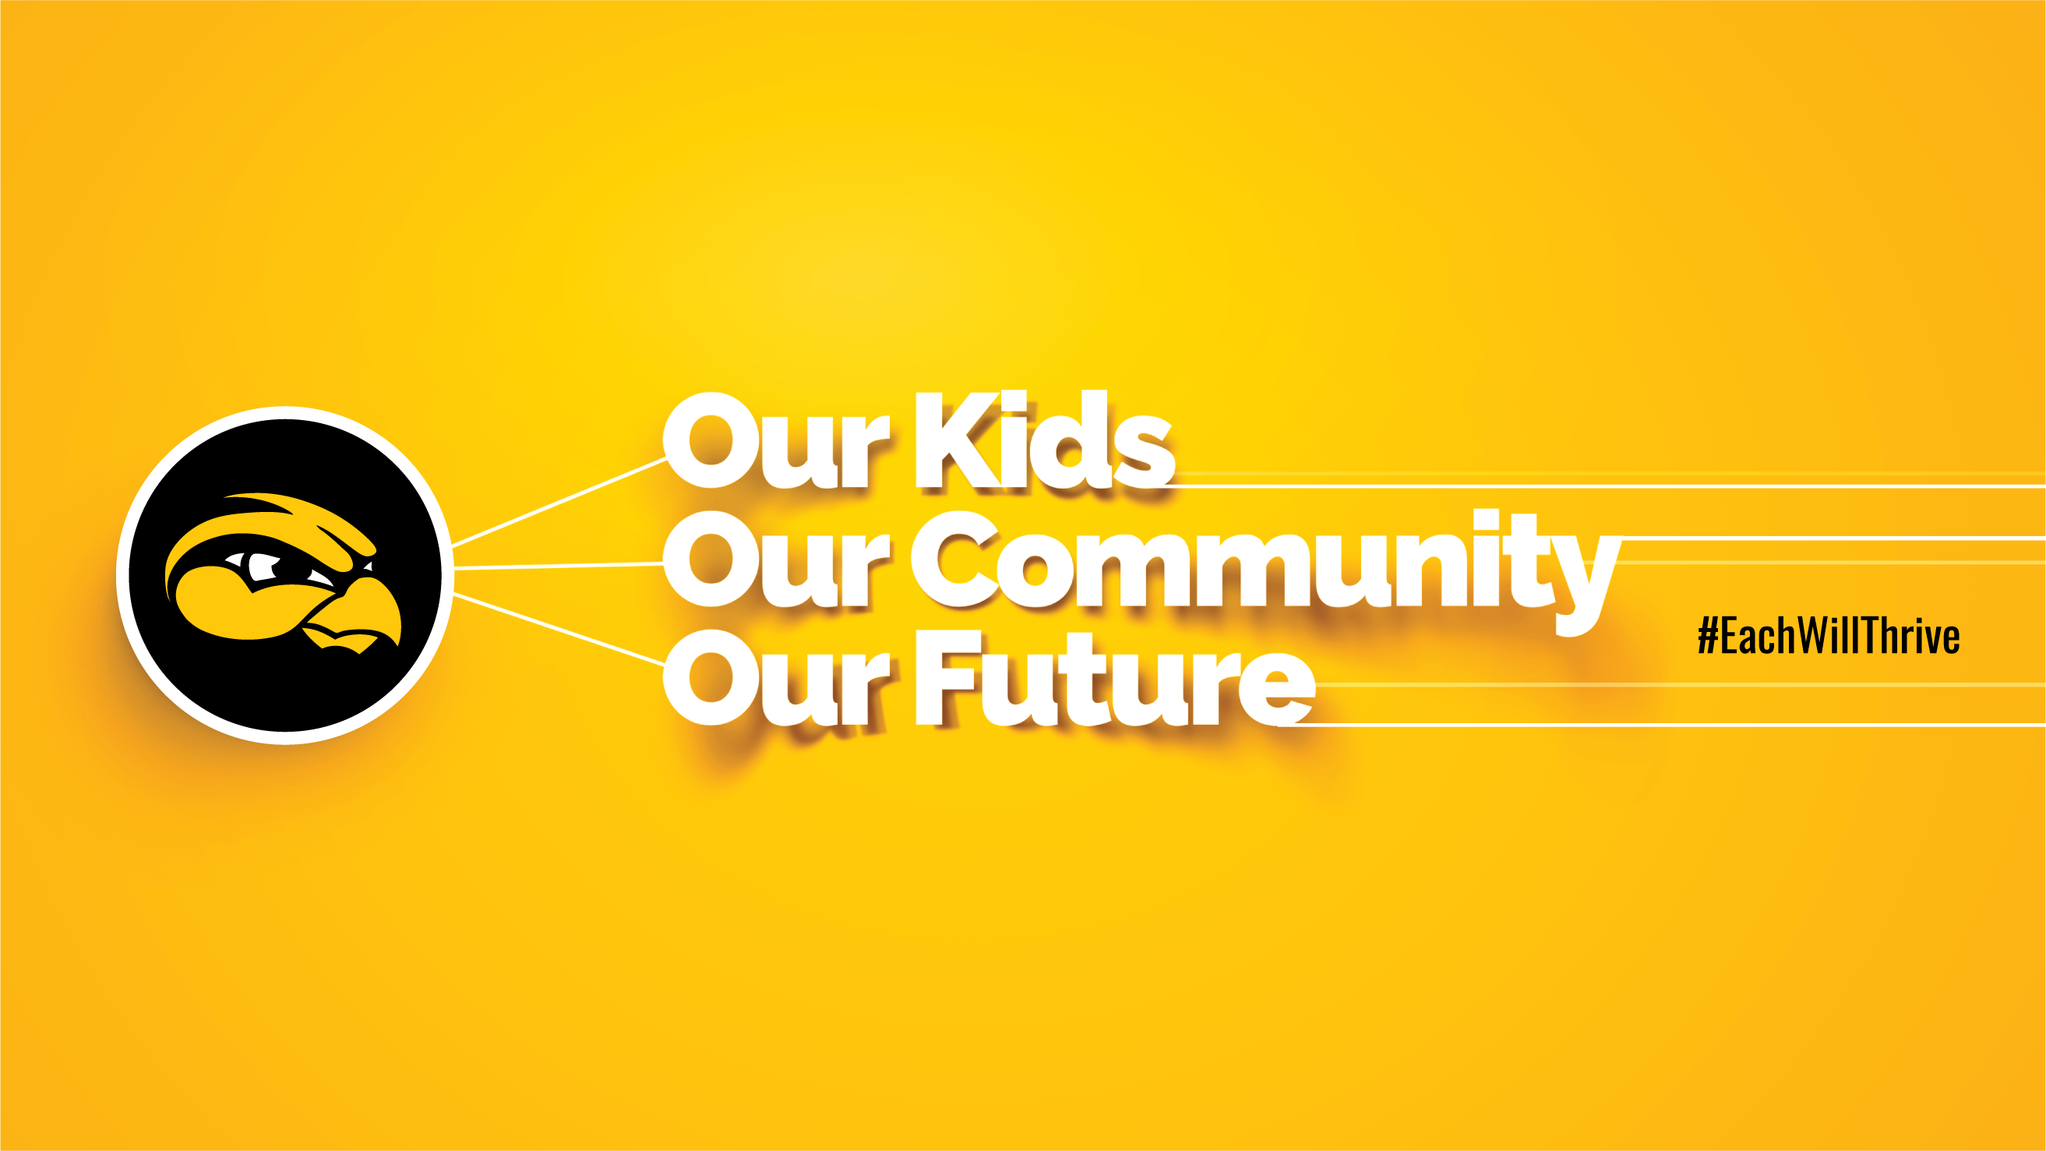 Our Kids Our Community Our Future